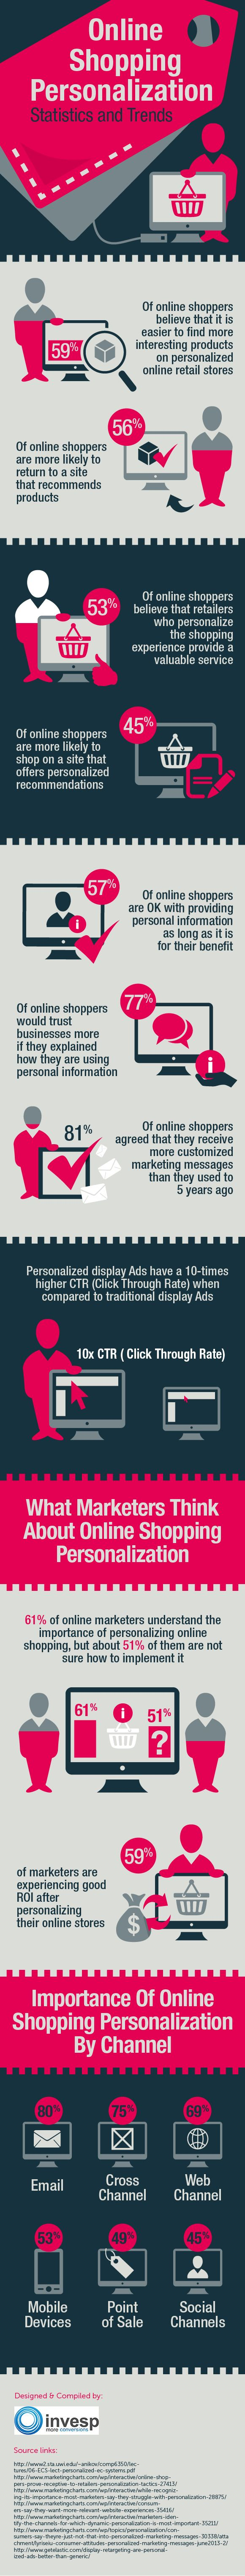 Online Shopping Personalization – Statistics and Trends